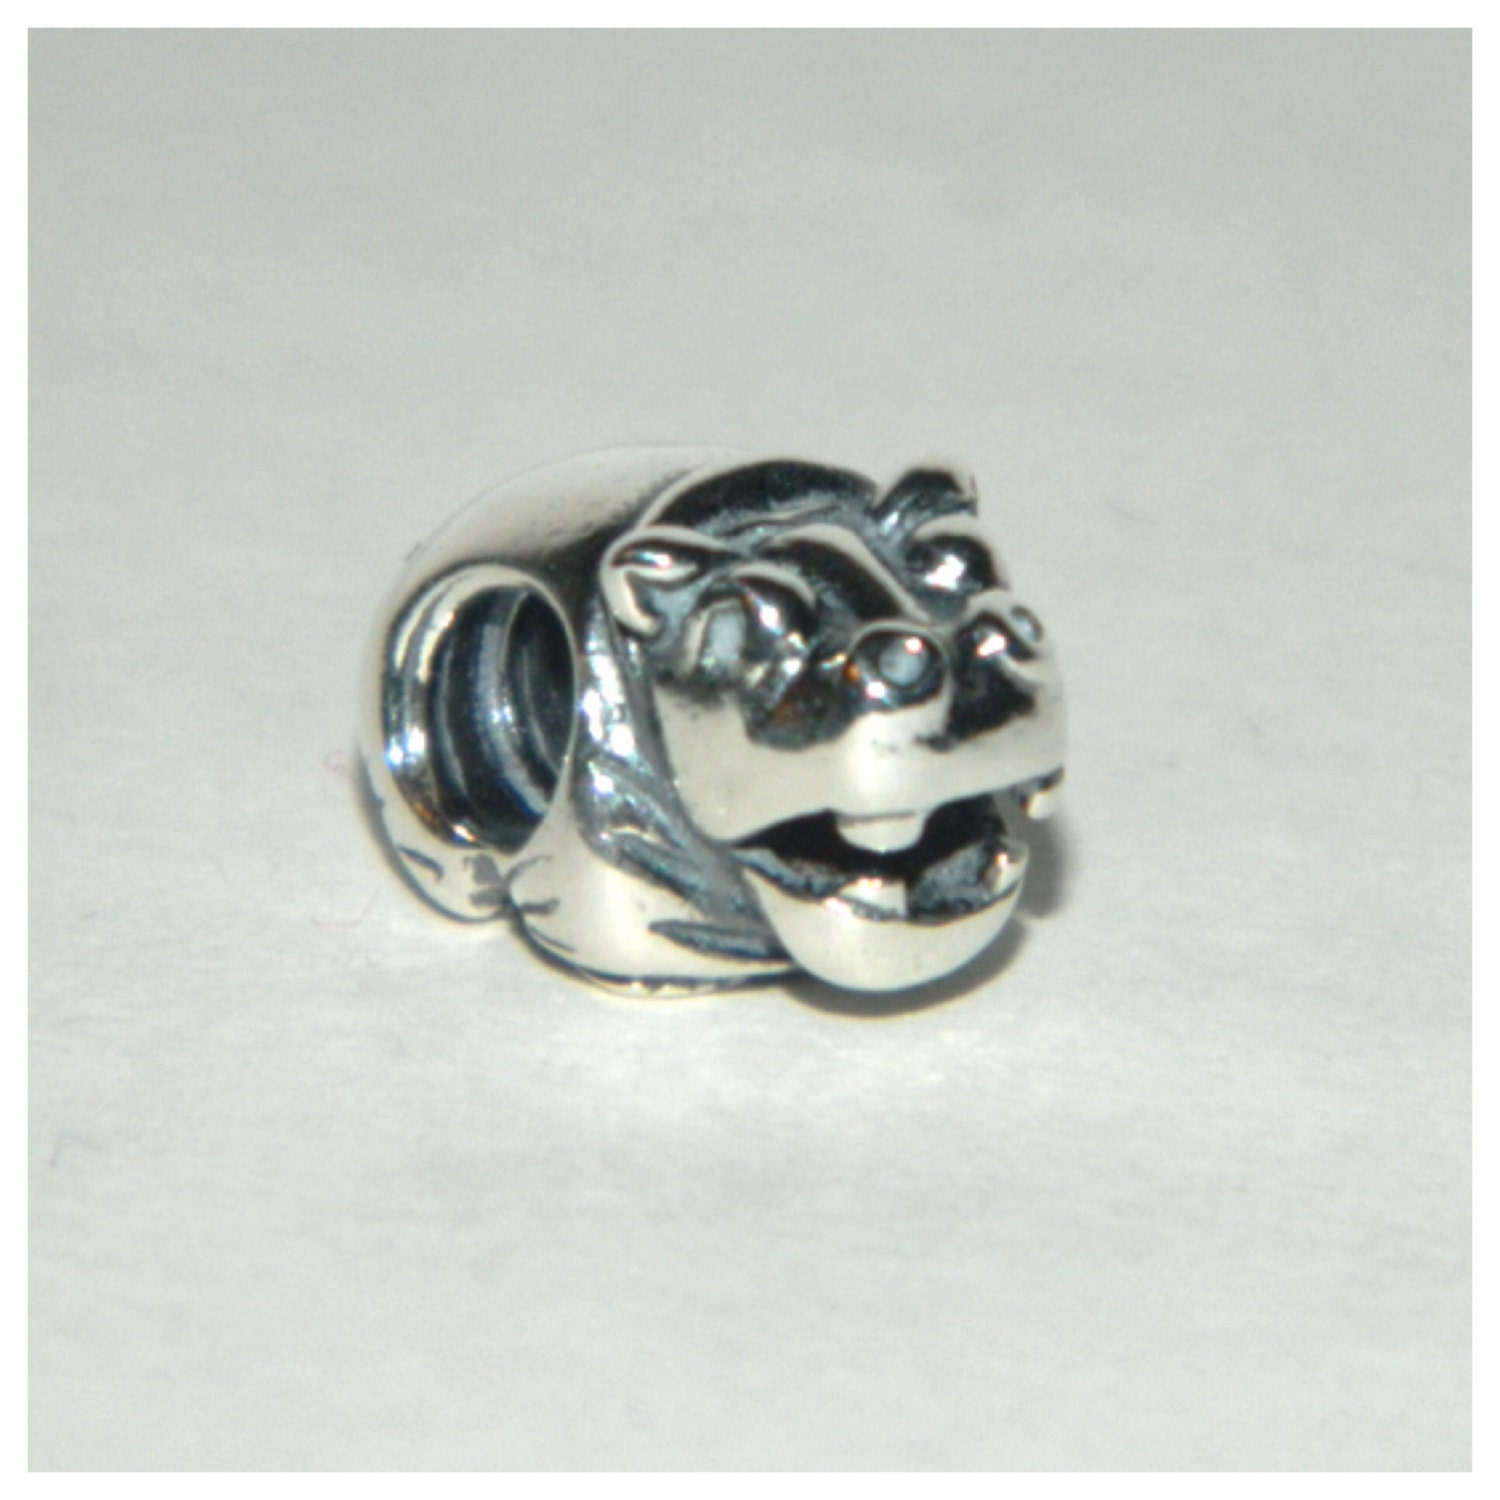 authentic pandora hippo bead charm s925 ale by jcnormsjewelry